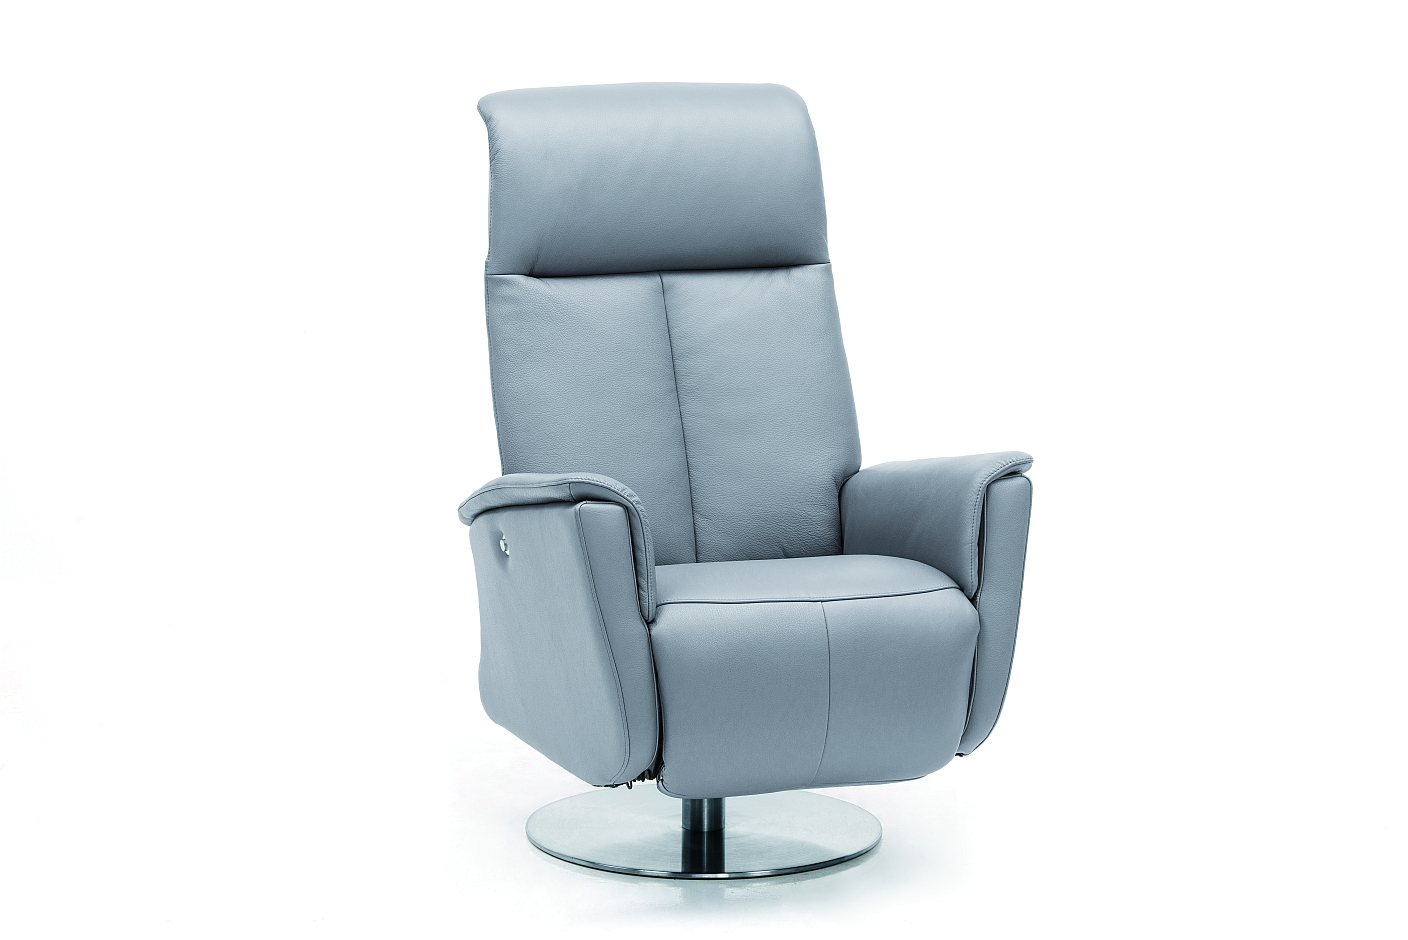 Stressless Sessel Jazz Stressless Sessel Schmal. Sillones Reclinables C Modos